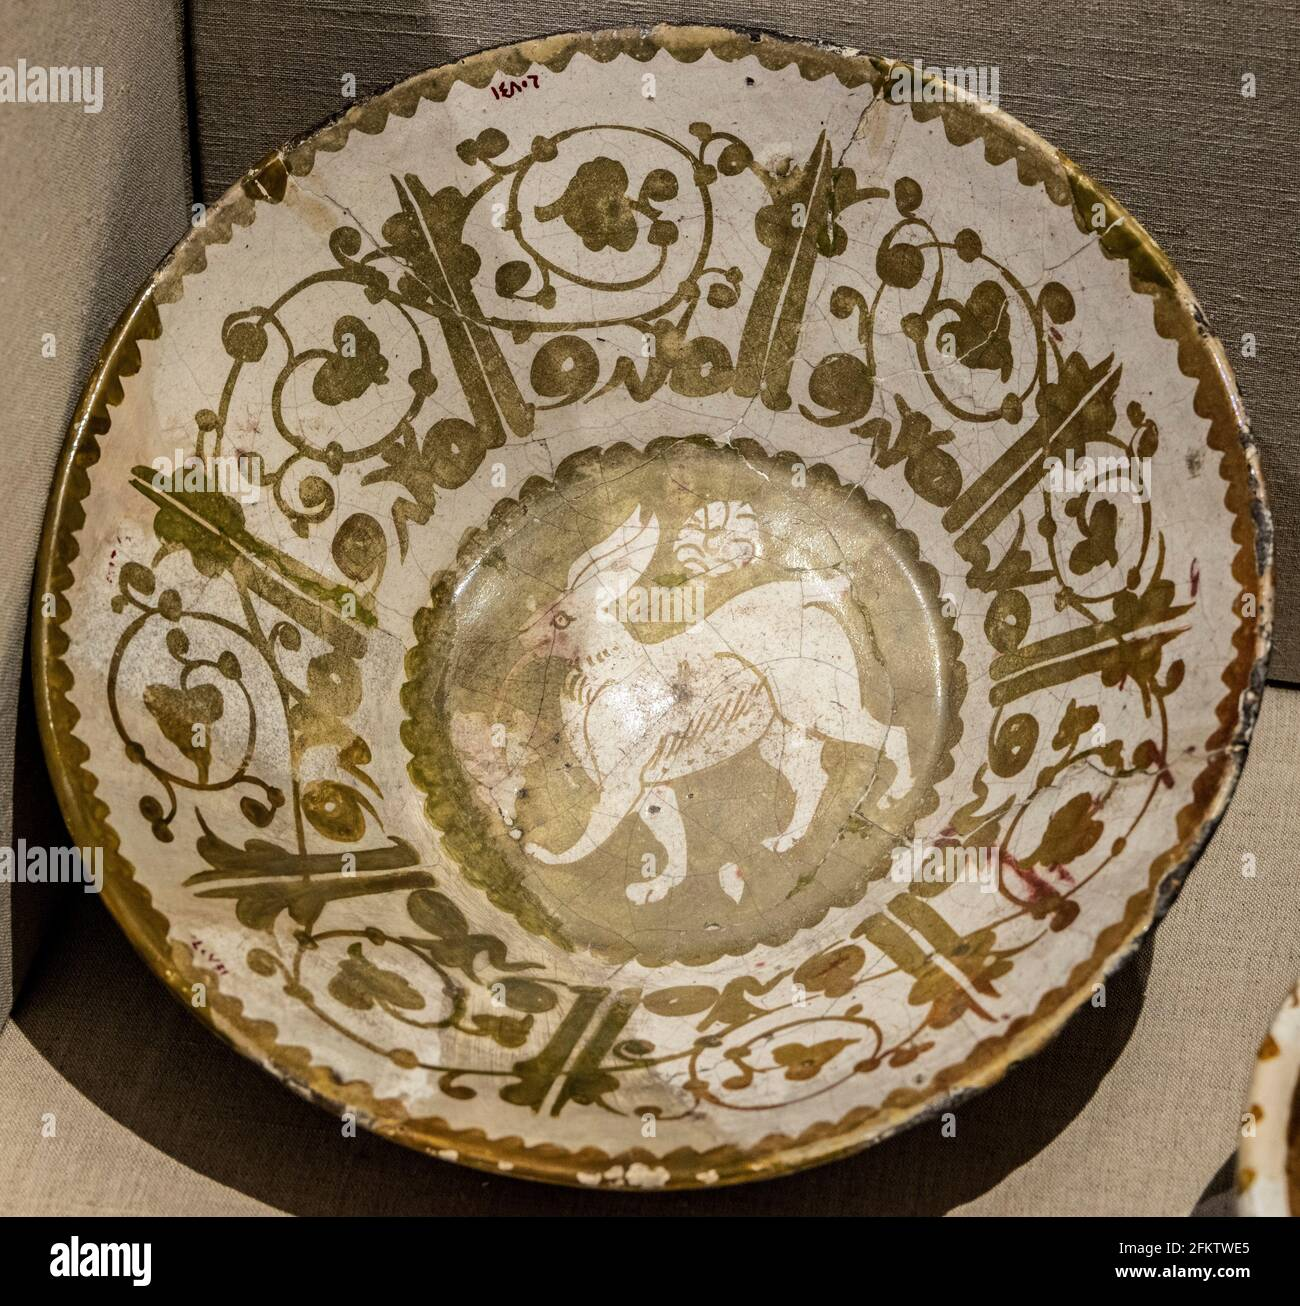 Fatimid lustre bowl with hare and Kufic inscription, National Museum of Egyptian Civilization, Cairo, Egypt Stock Photo